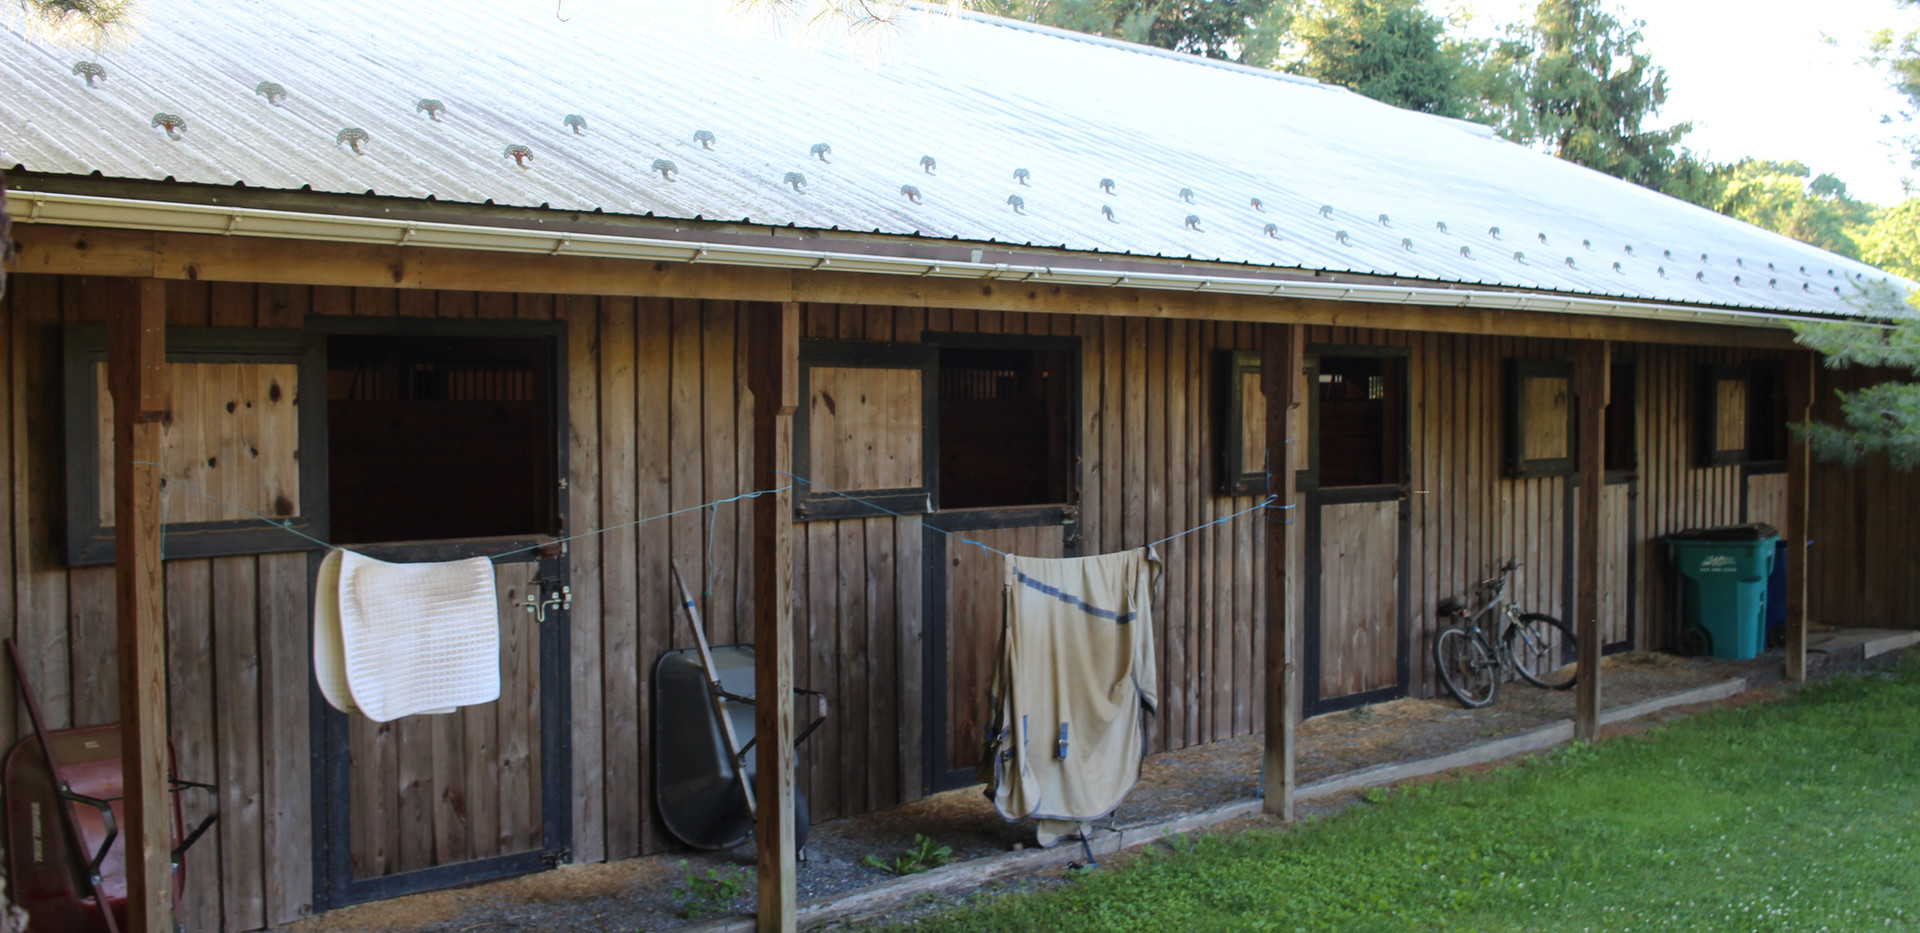 Back of main barn